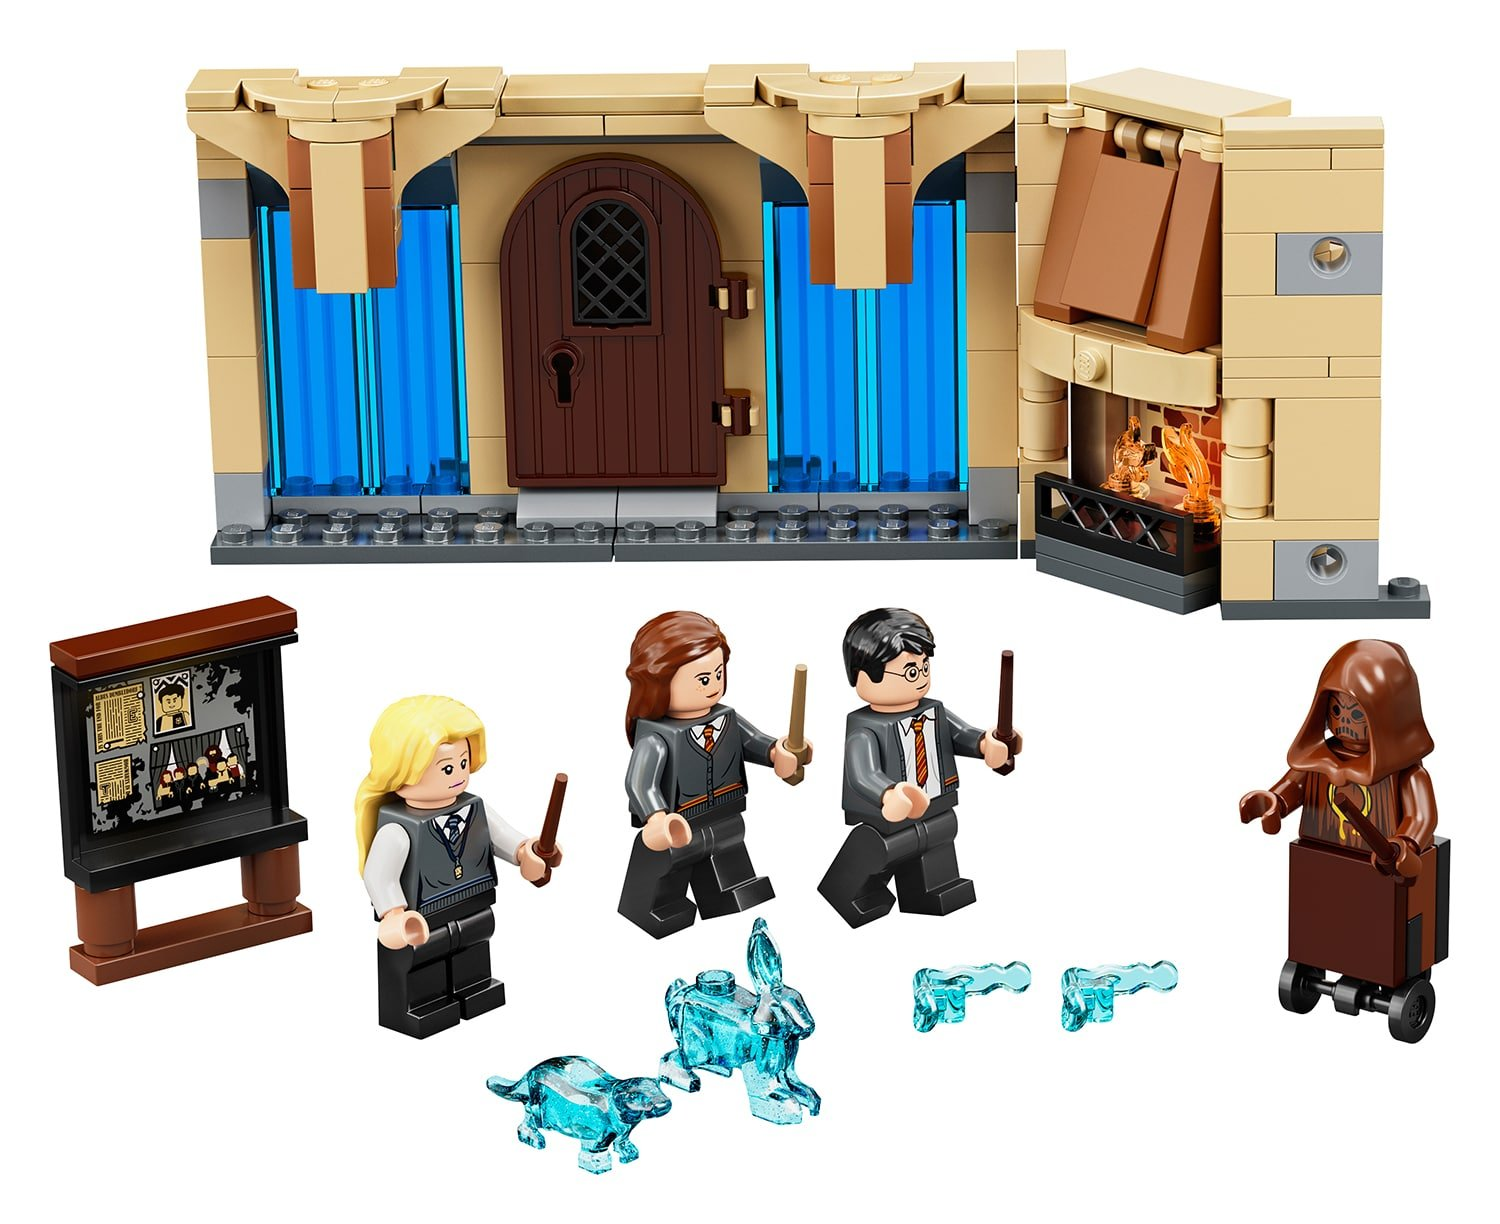 LEGO expands its Harry Potter collection with new Wizarding World playsets 12